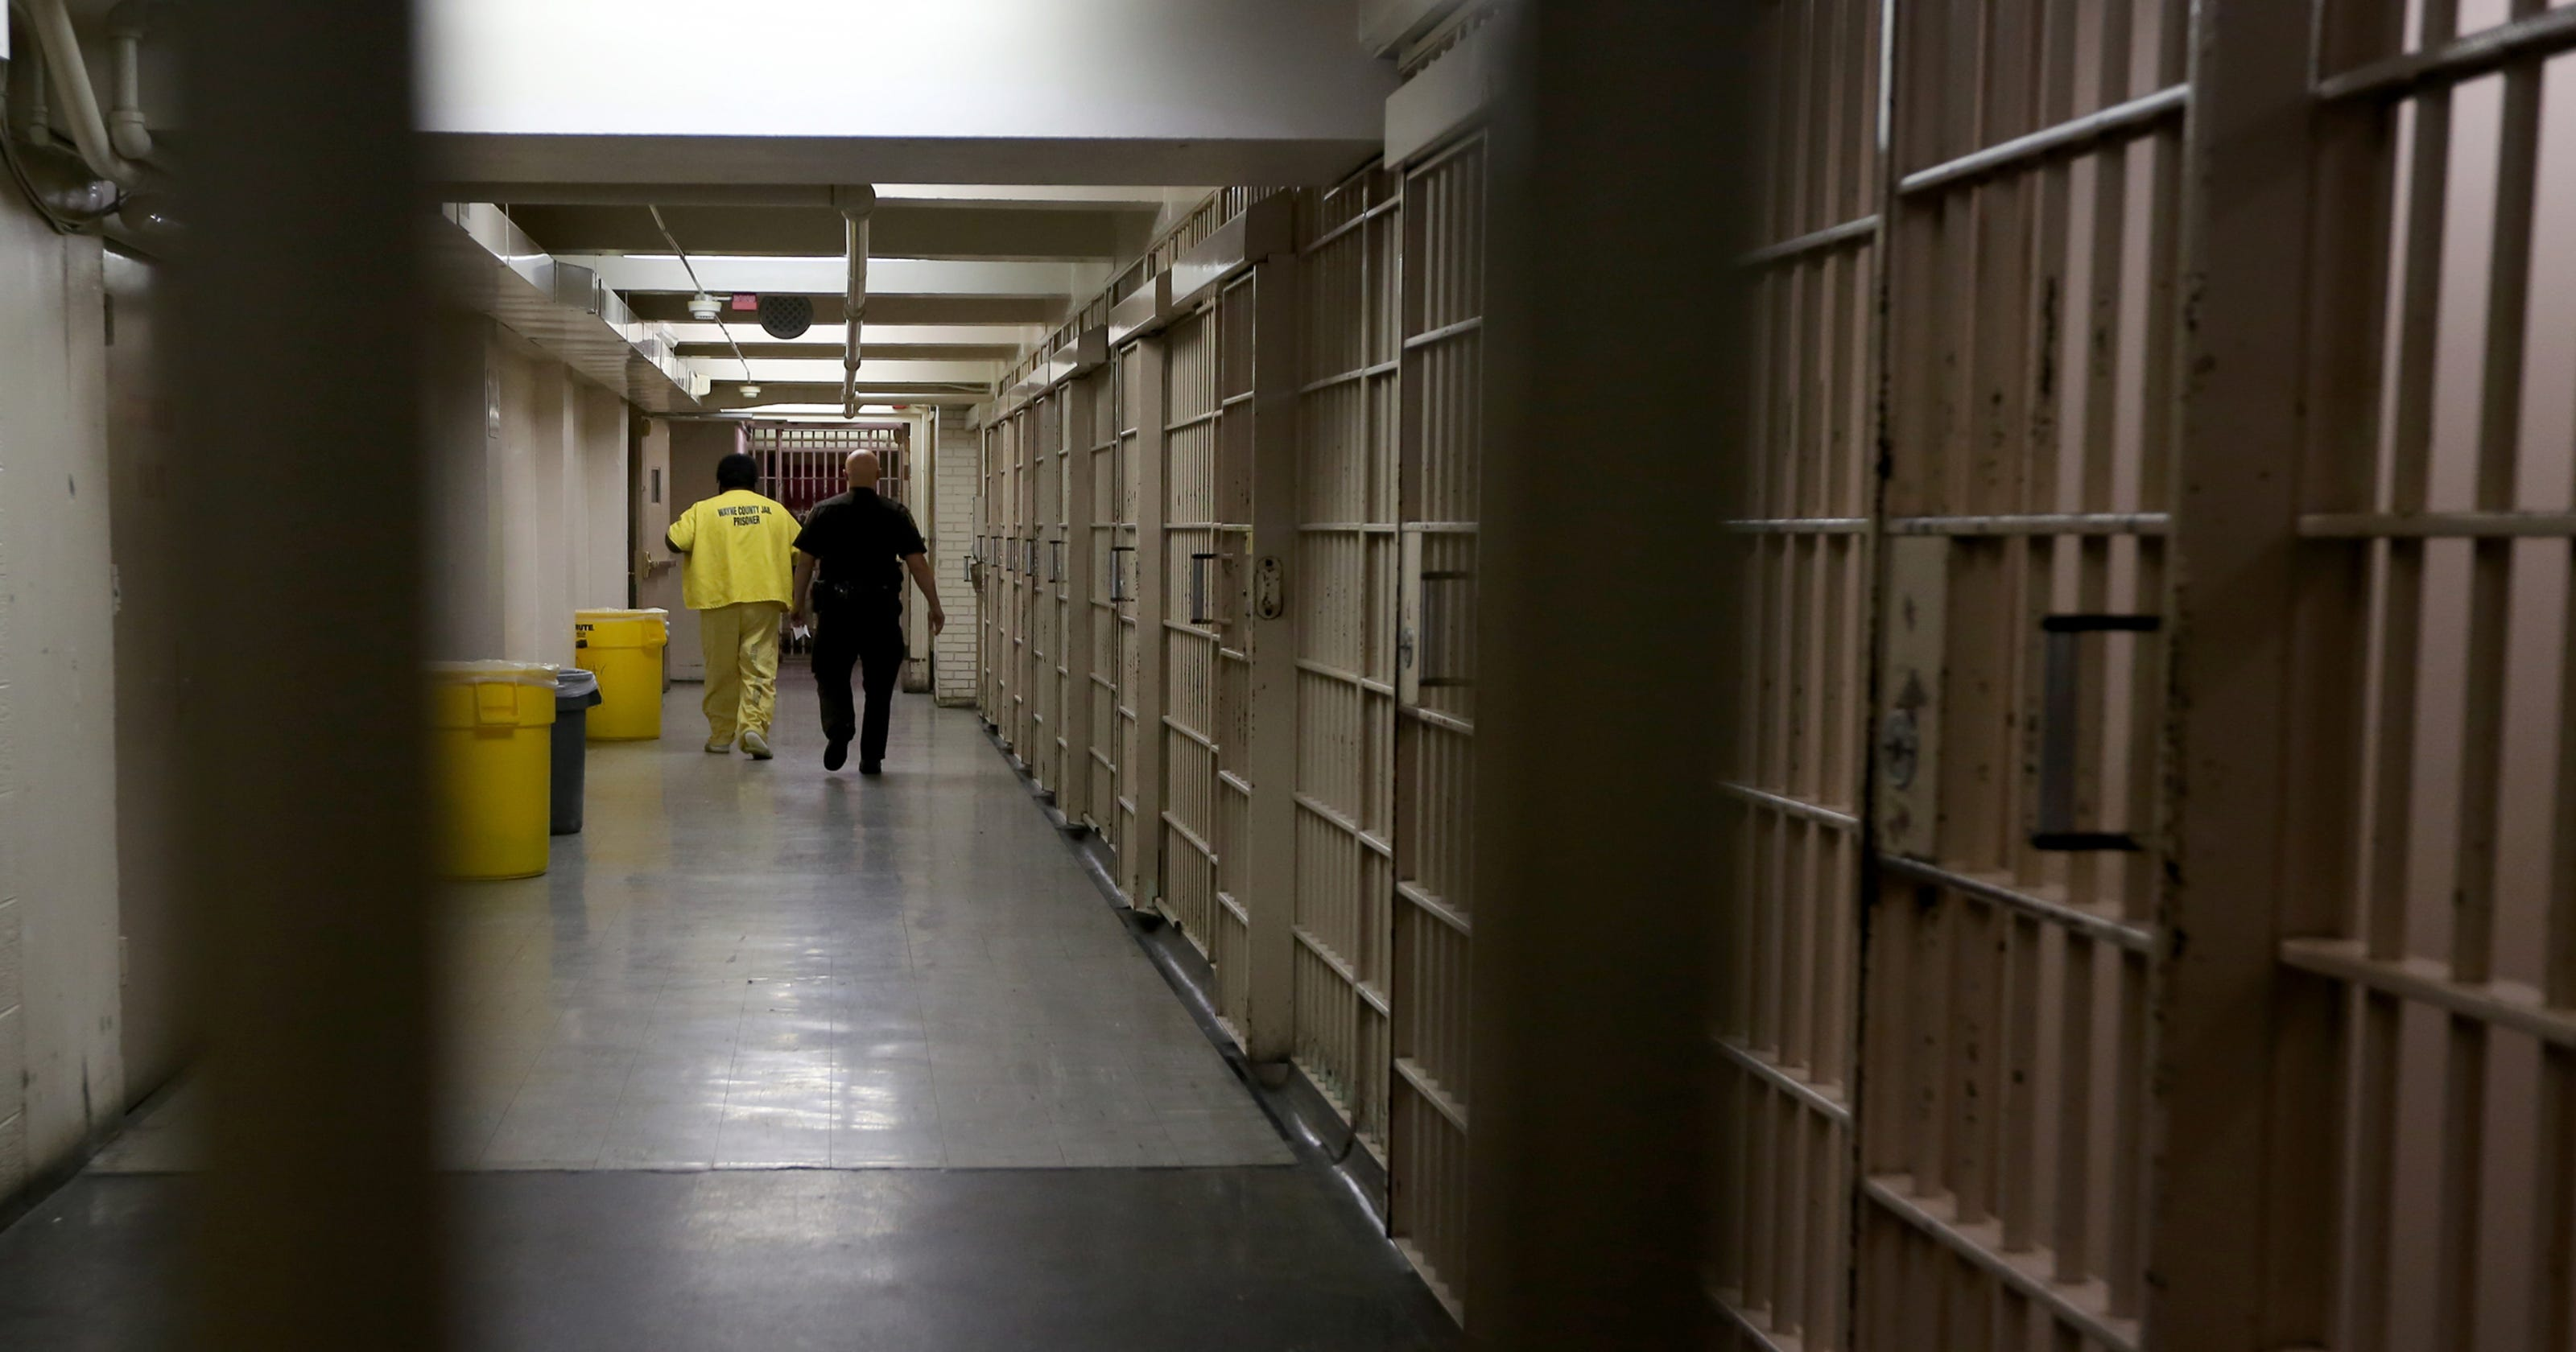 At Outdated Wayne County Jails 4 Suicides In 5 Months Raise Alarm